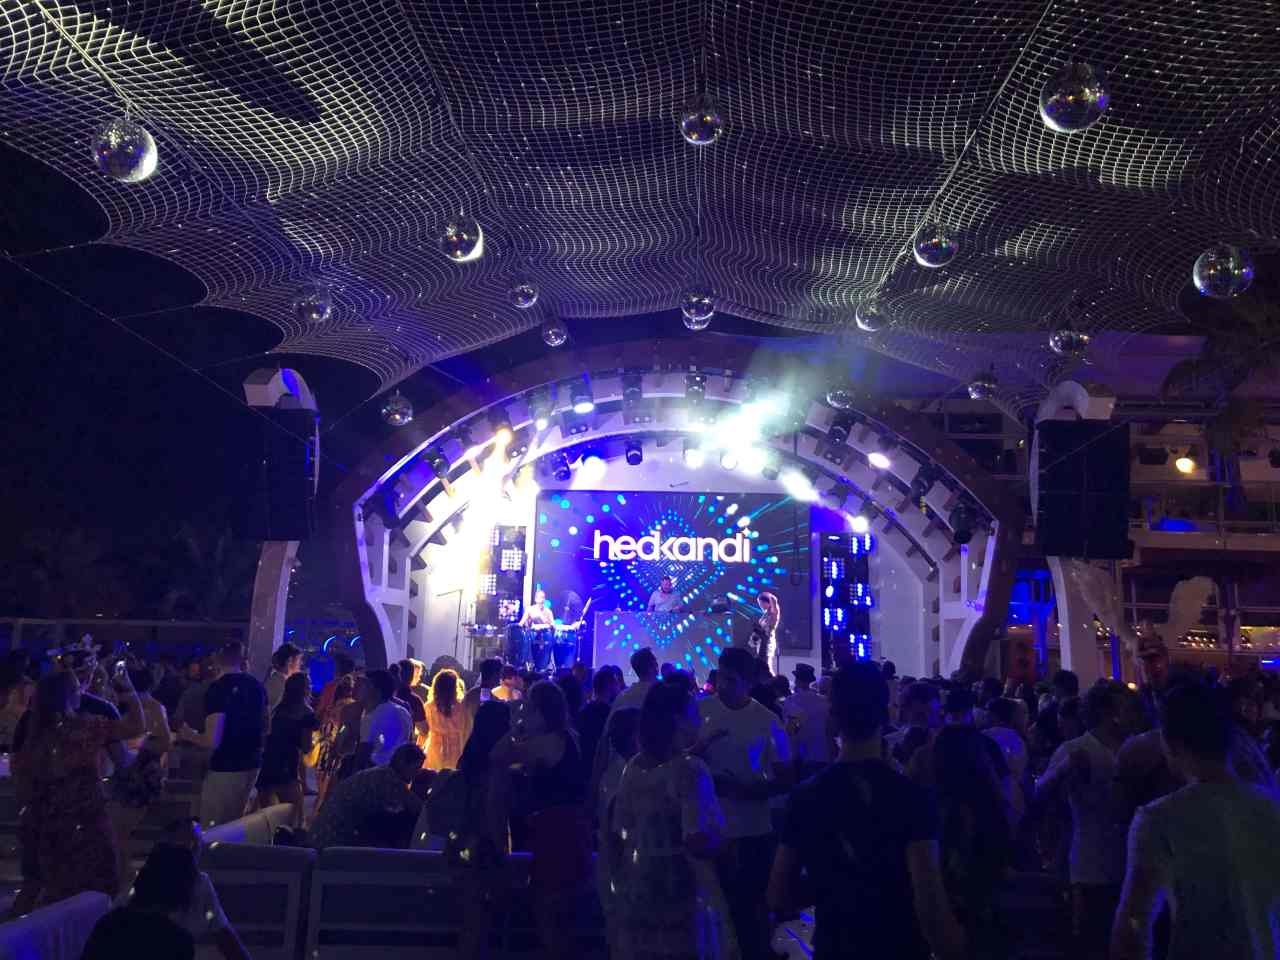 Hedkandi party zero gravity Dubai